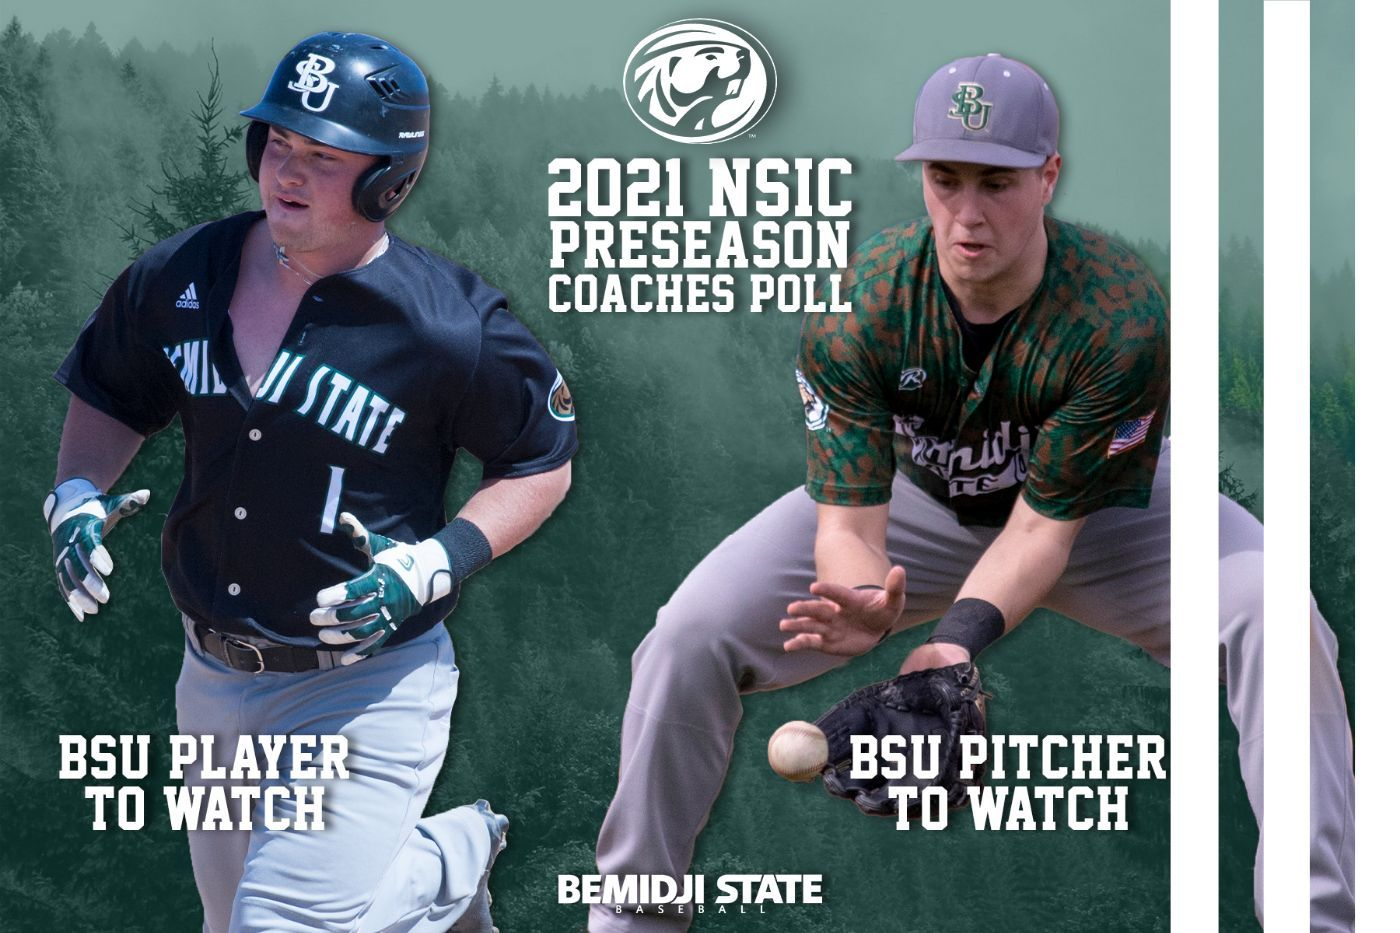 Boser and Lake named BSU's Players to Watch in NSIC Preseason Coaches' Poll